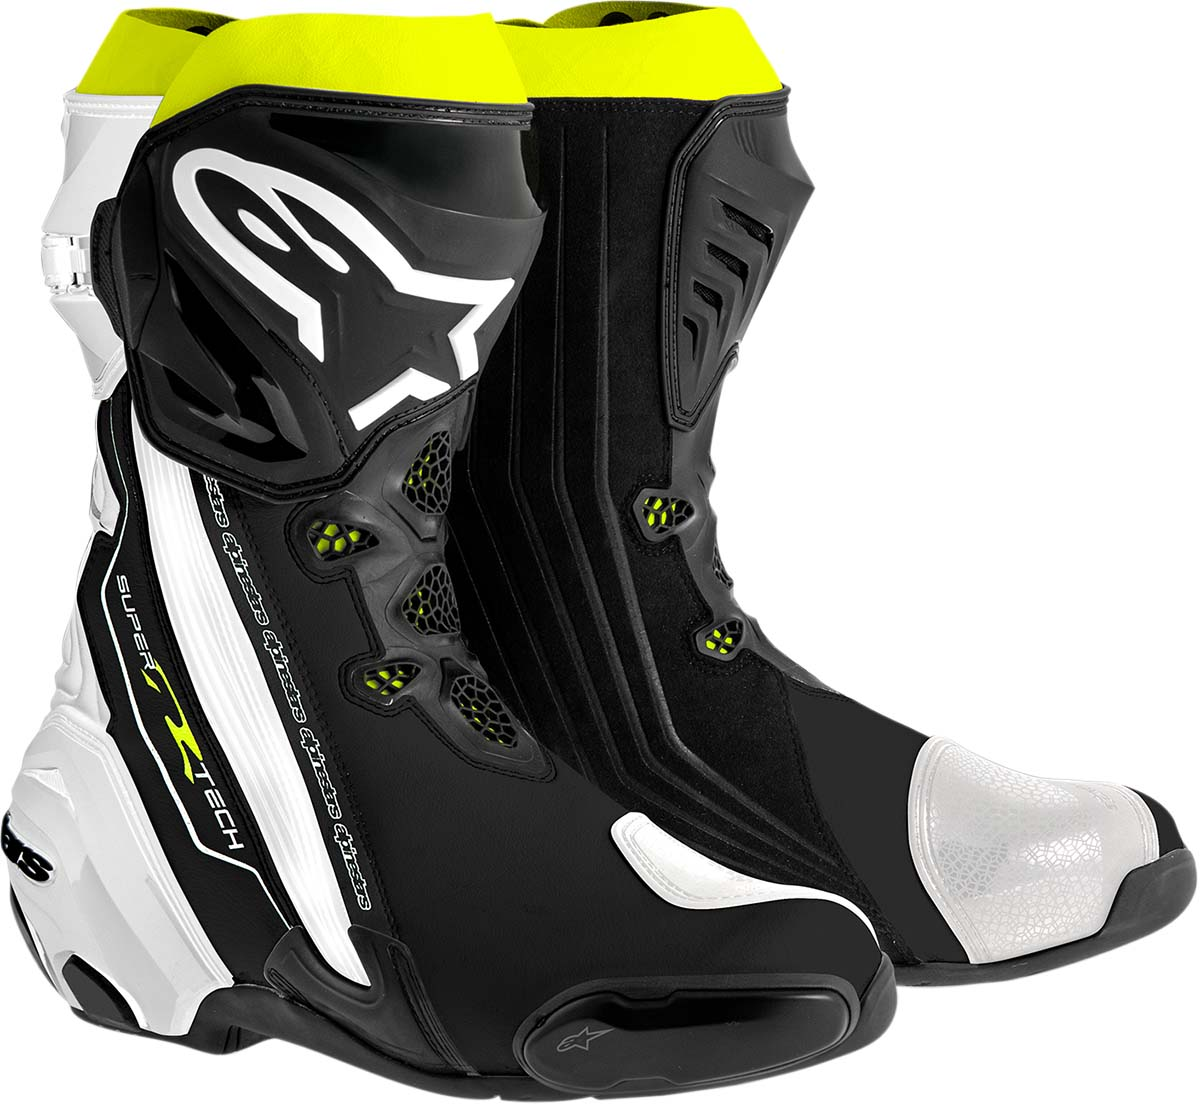 Alpinestars SUPERTECH R Track/Road Racing Motorcycle Boots (Black/White/Yellow)